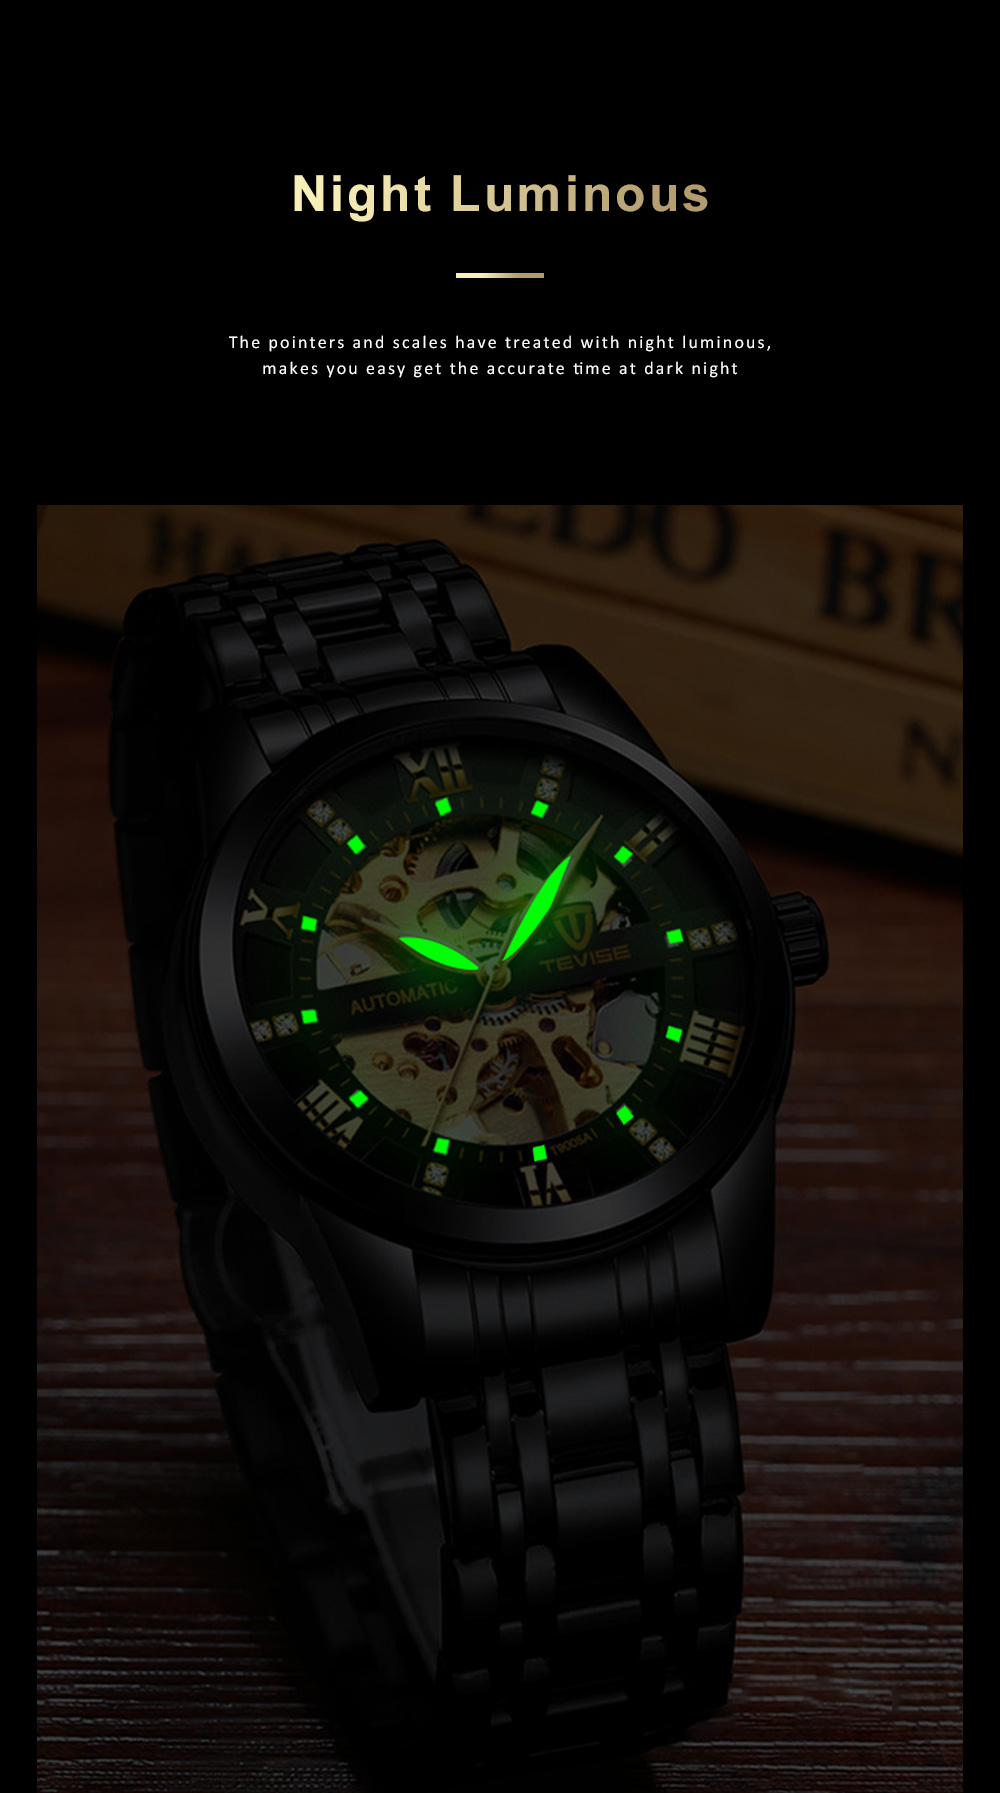 Automatic Mechanical Men's Watch for Business, Daily, Dating, Luxurious Fashion Businessman Watch with Waterproof 2